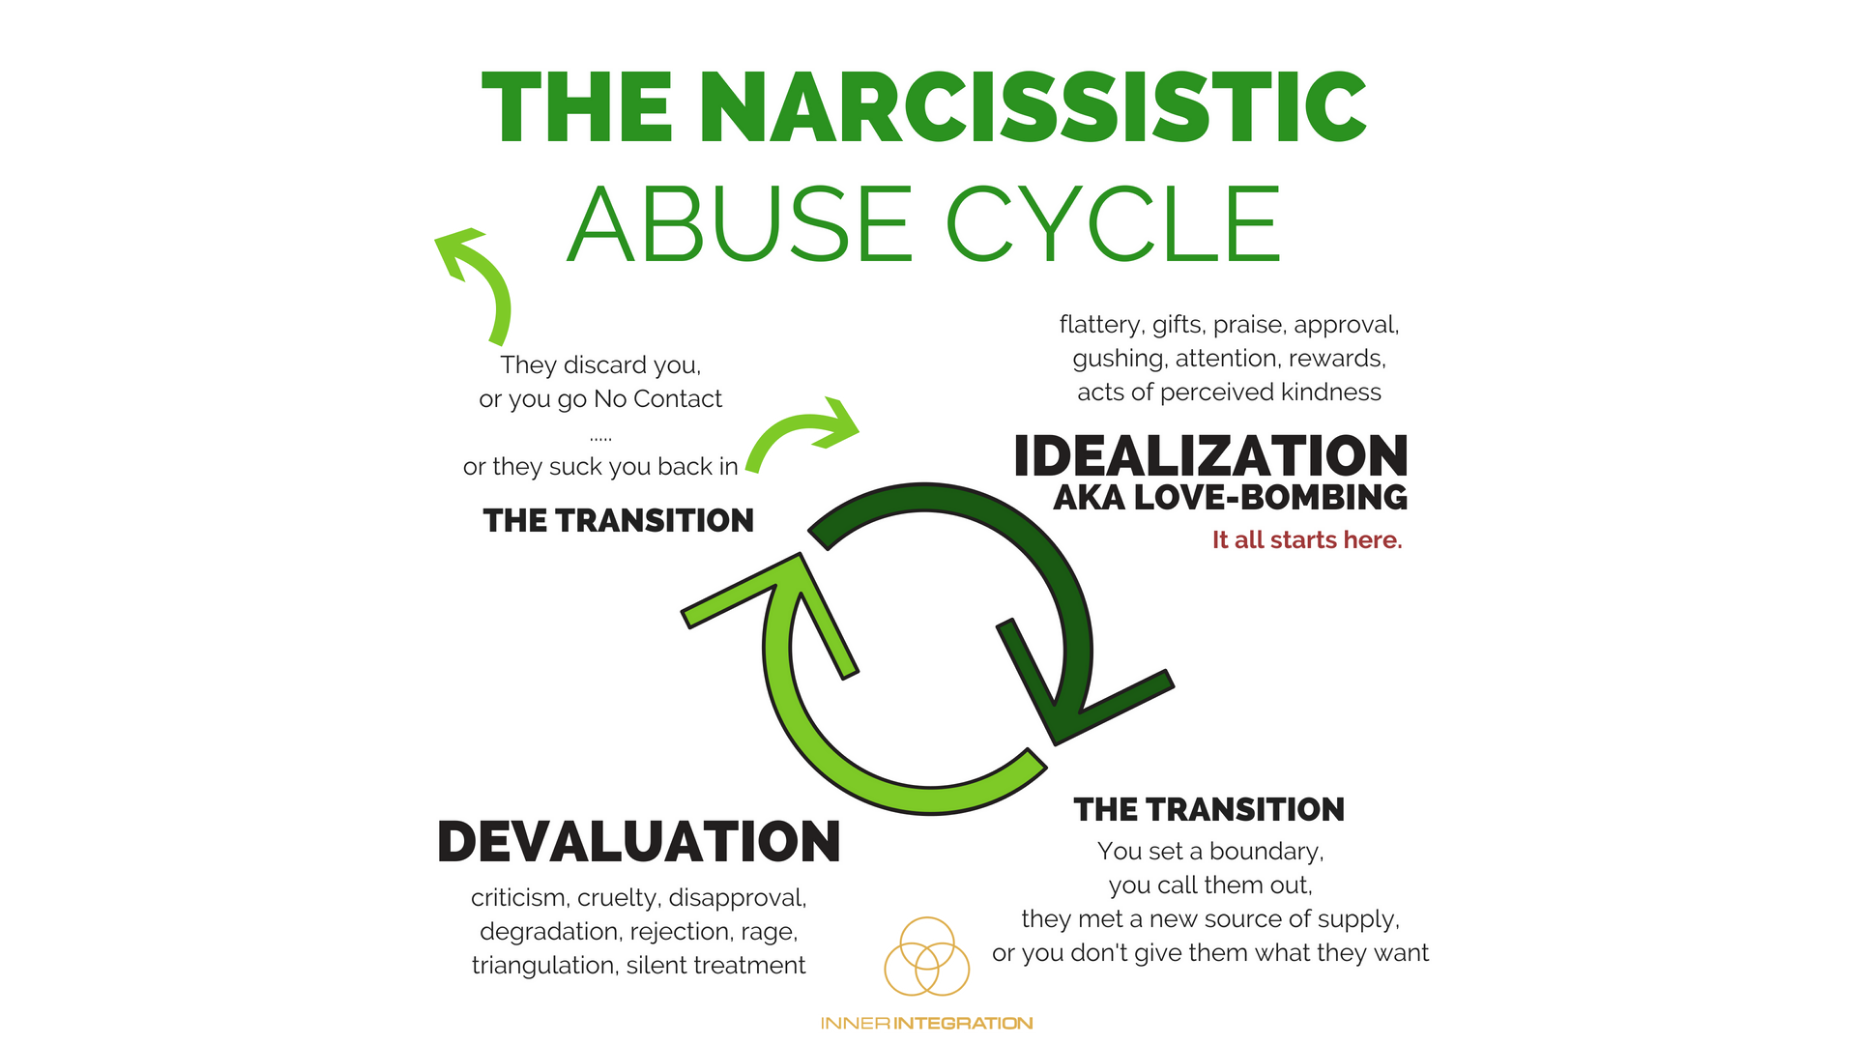 sites/8238/video/nUjr6hfLQ6aHovbrpxX7_The_Narcissistic_Abuse_Cycle mp4